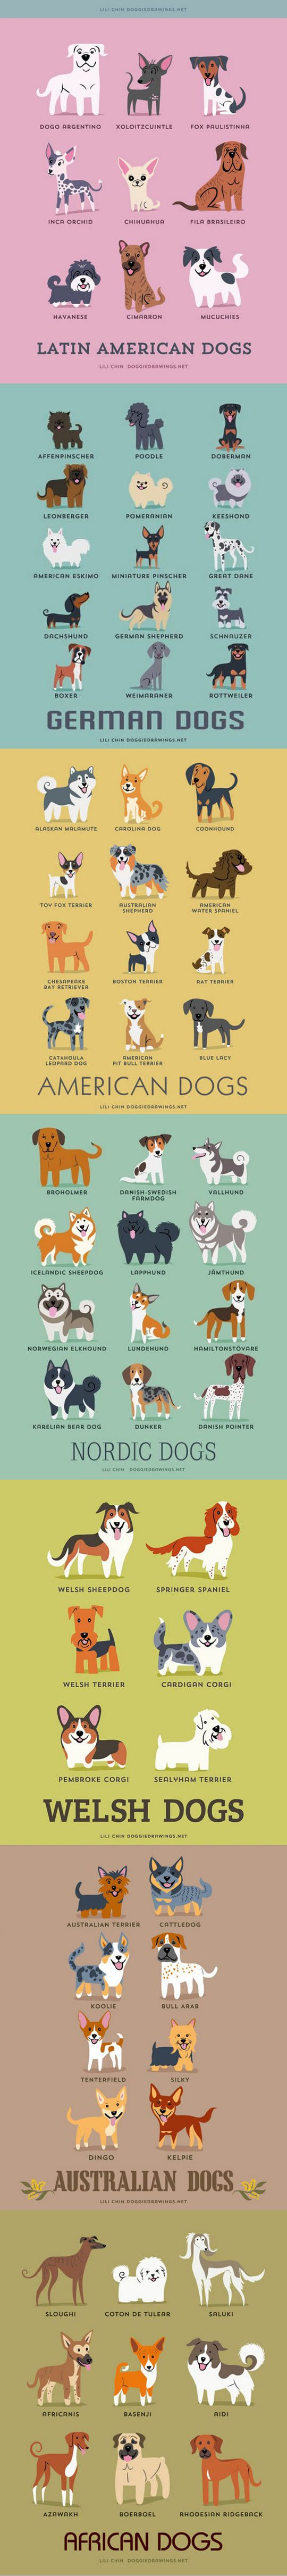 Dog Breeds. I Love Them All! Part 3   #Animals #Breed #Dogs #World